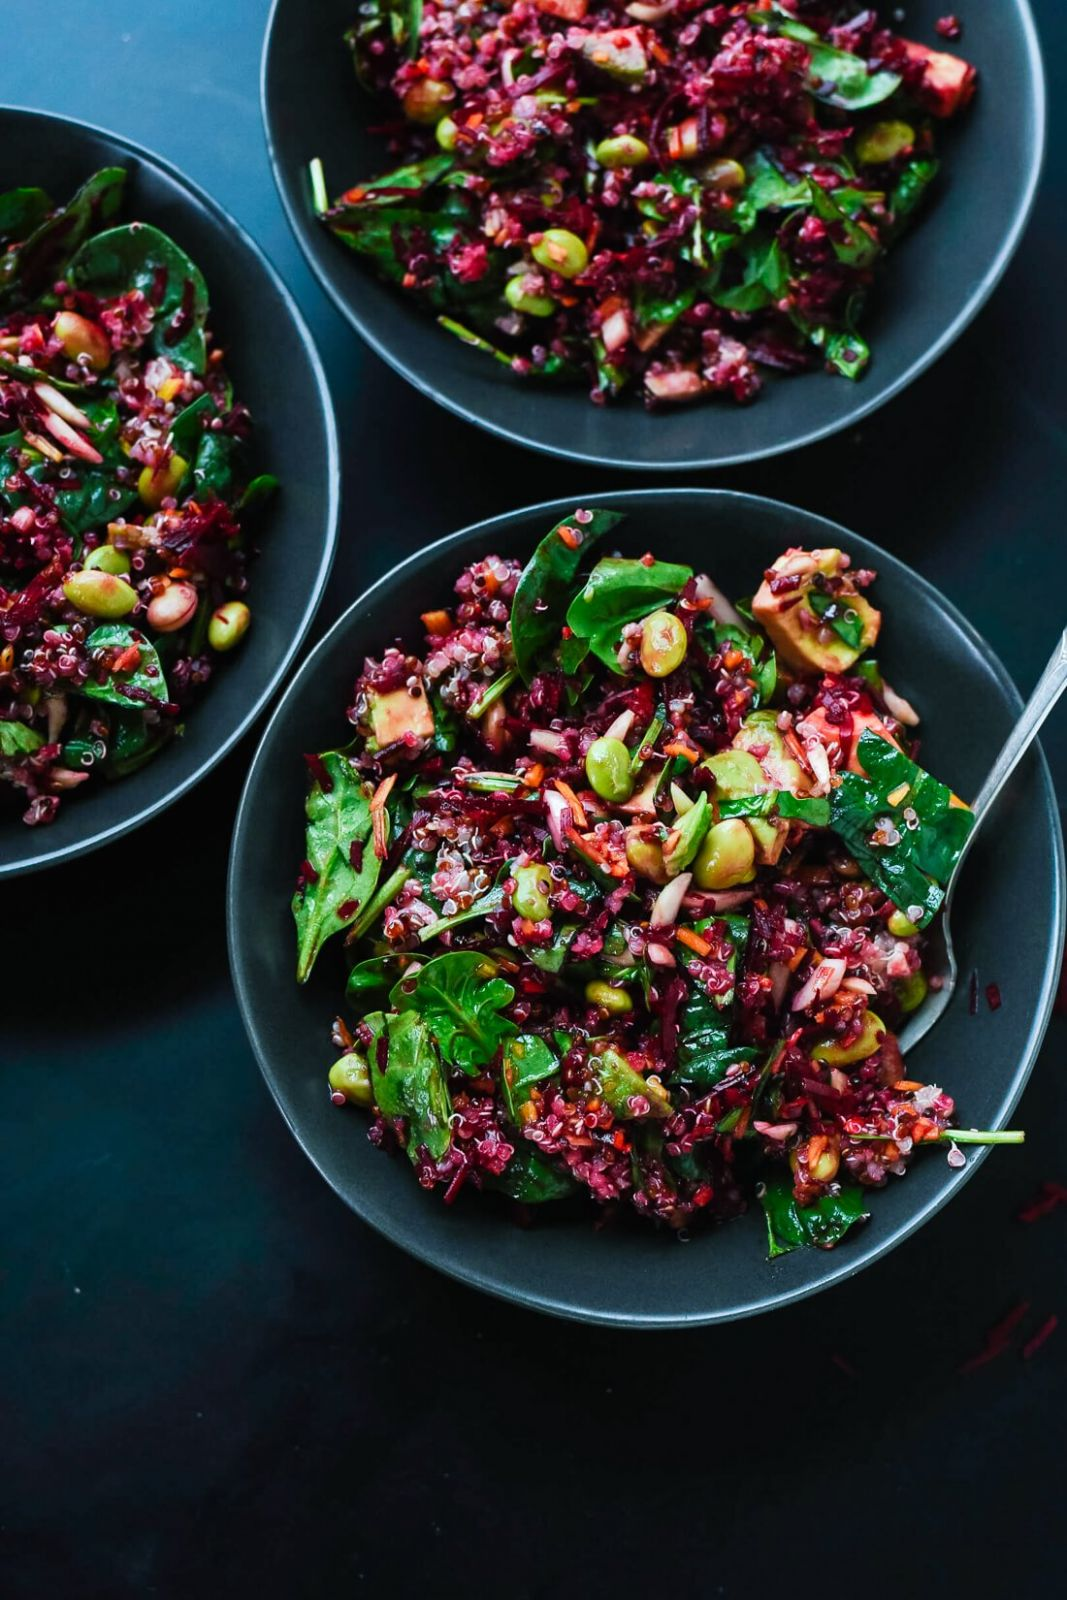 Colorful Beet Salad with Carrot, Quinoa & Spinach - Salad Recipes Veg For Dinner